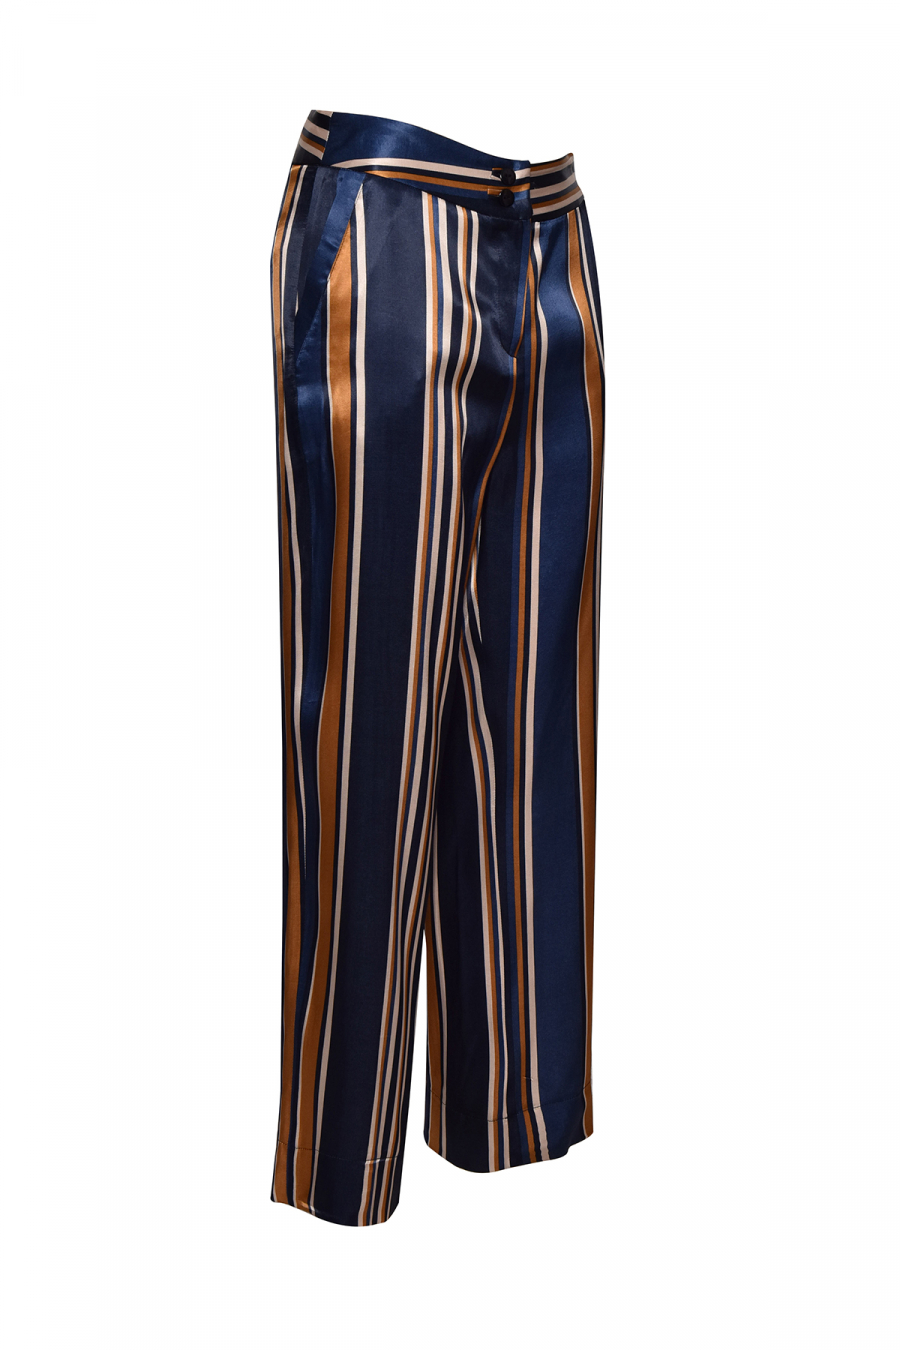 PANTS DARK BLUE STRIPES